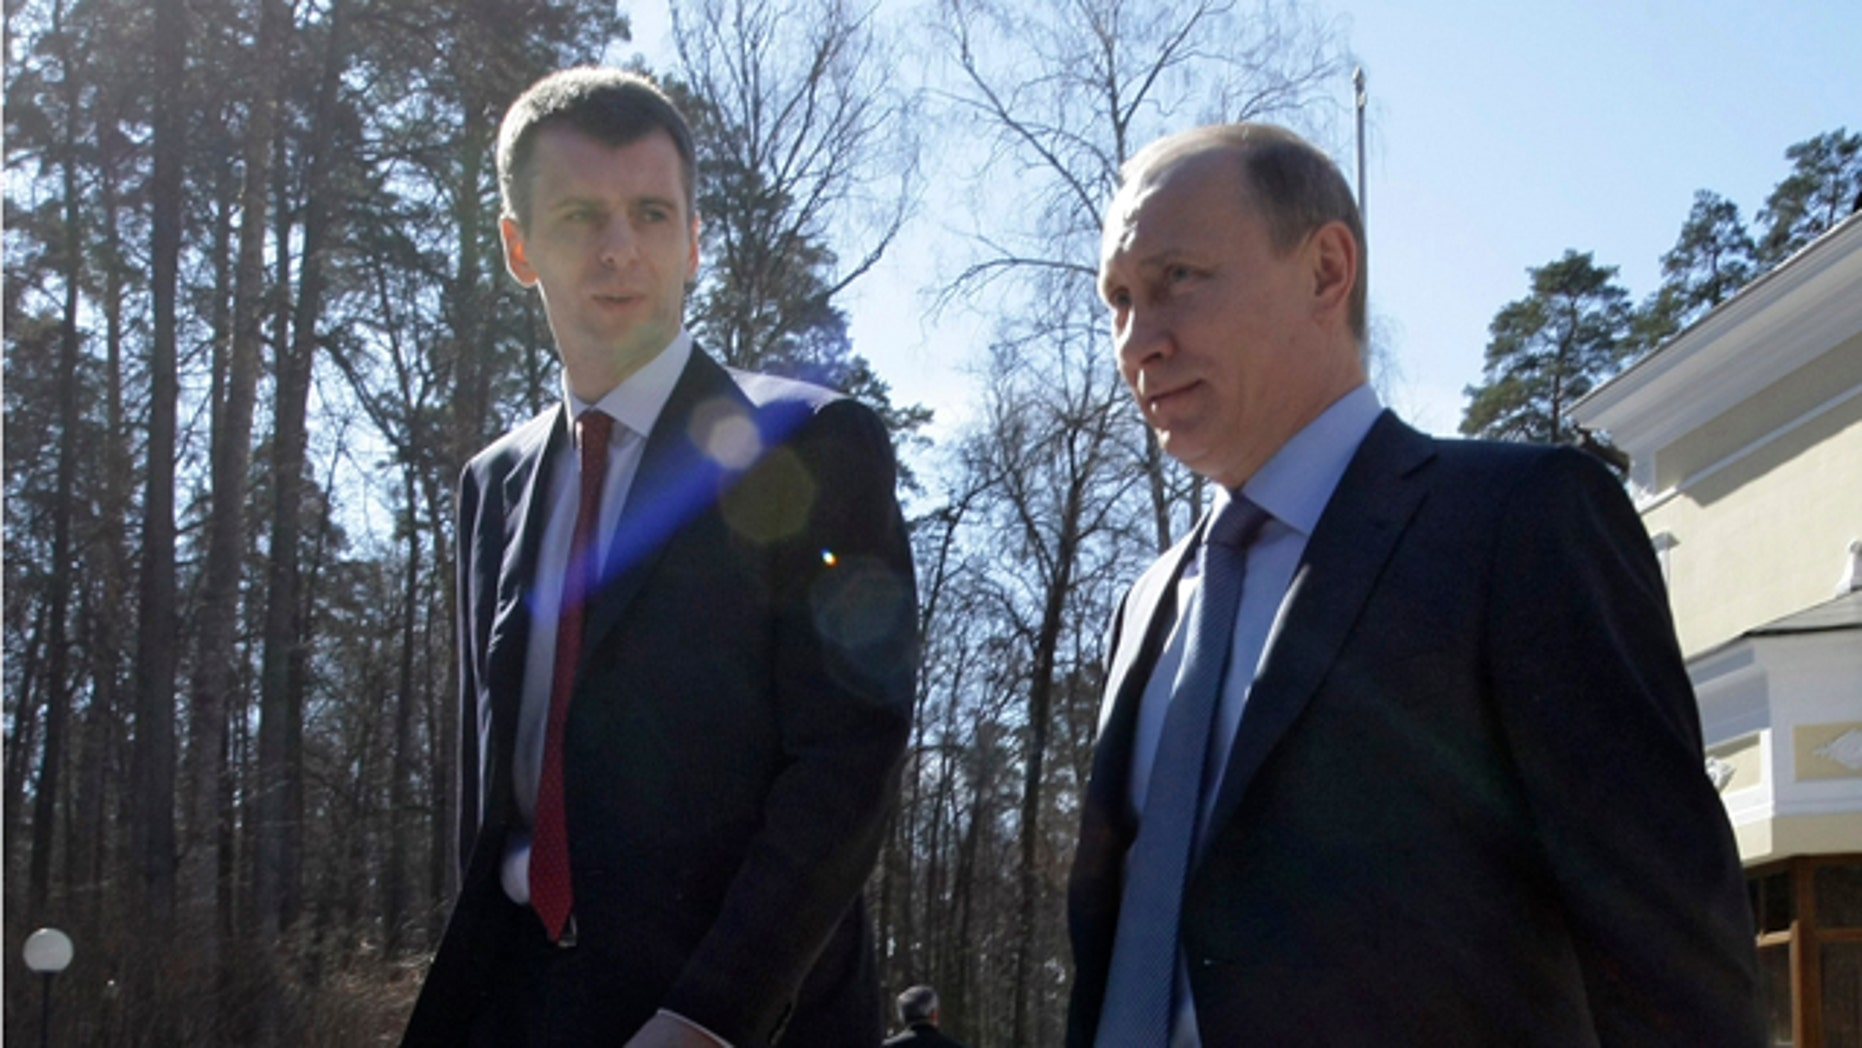 April 2011: Russian Prime Minister Vladimir Putin, right, flanked by Russian billionaire Mikhail Prokhorov at the Gorki residence outside Moscow.